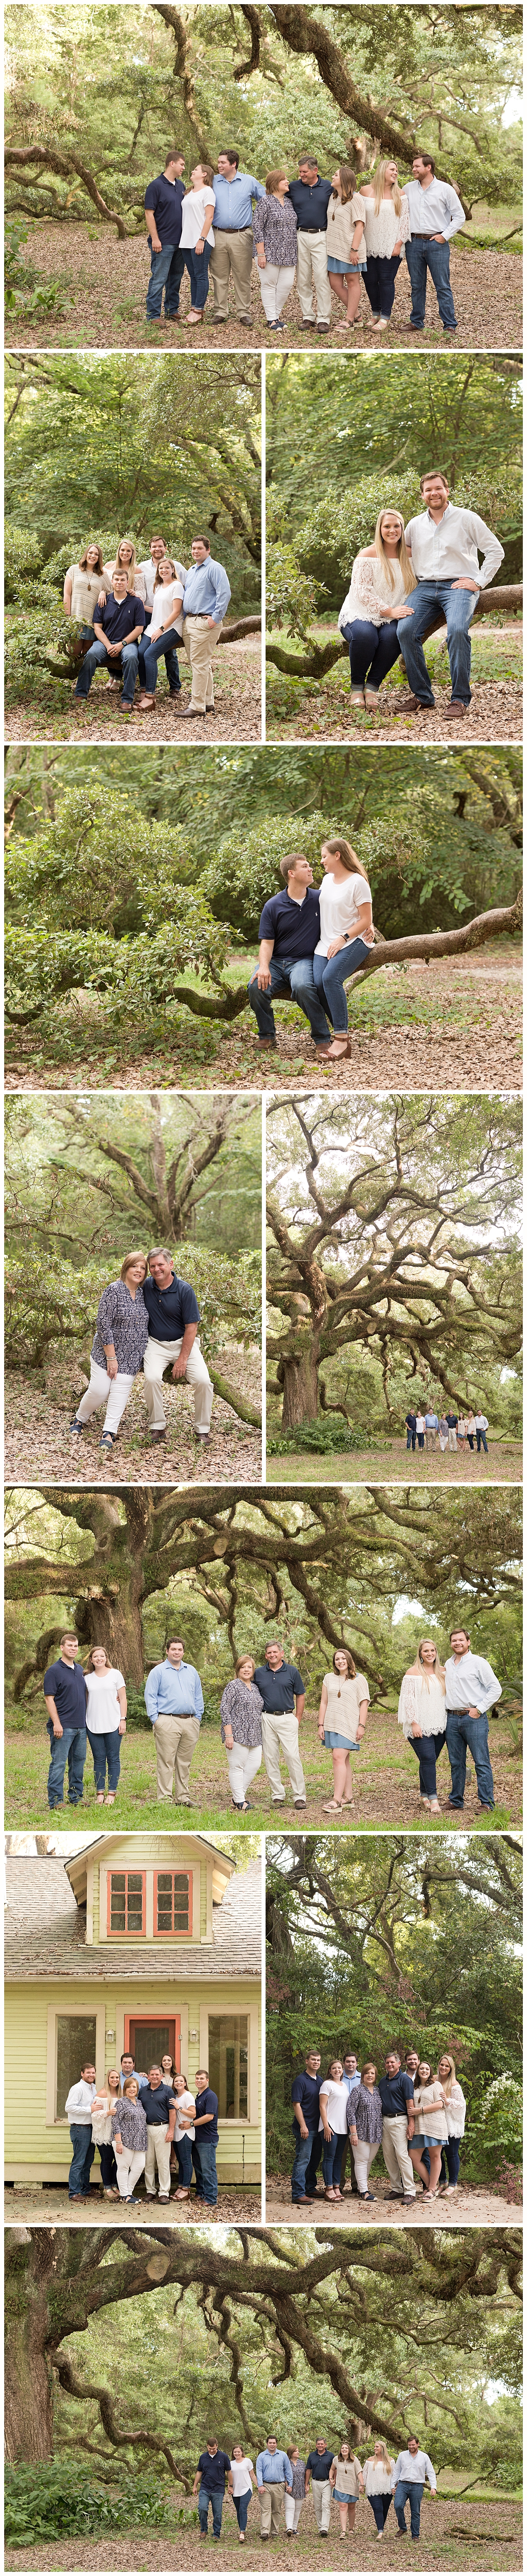 extended family photos in the woods, Ocean Springs, Mississippi family photographer